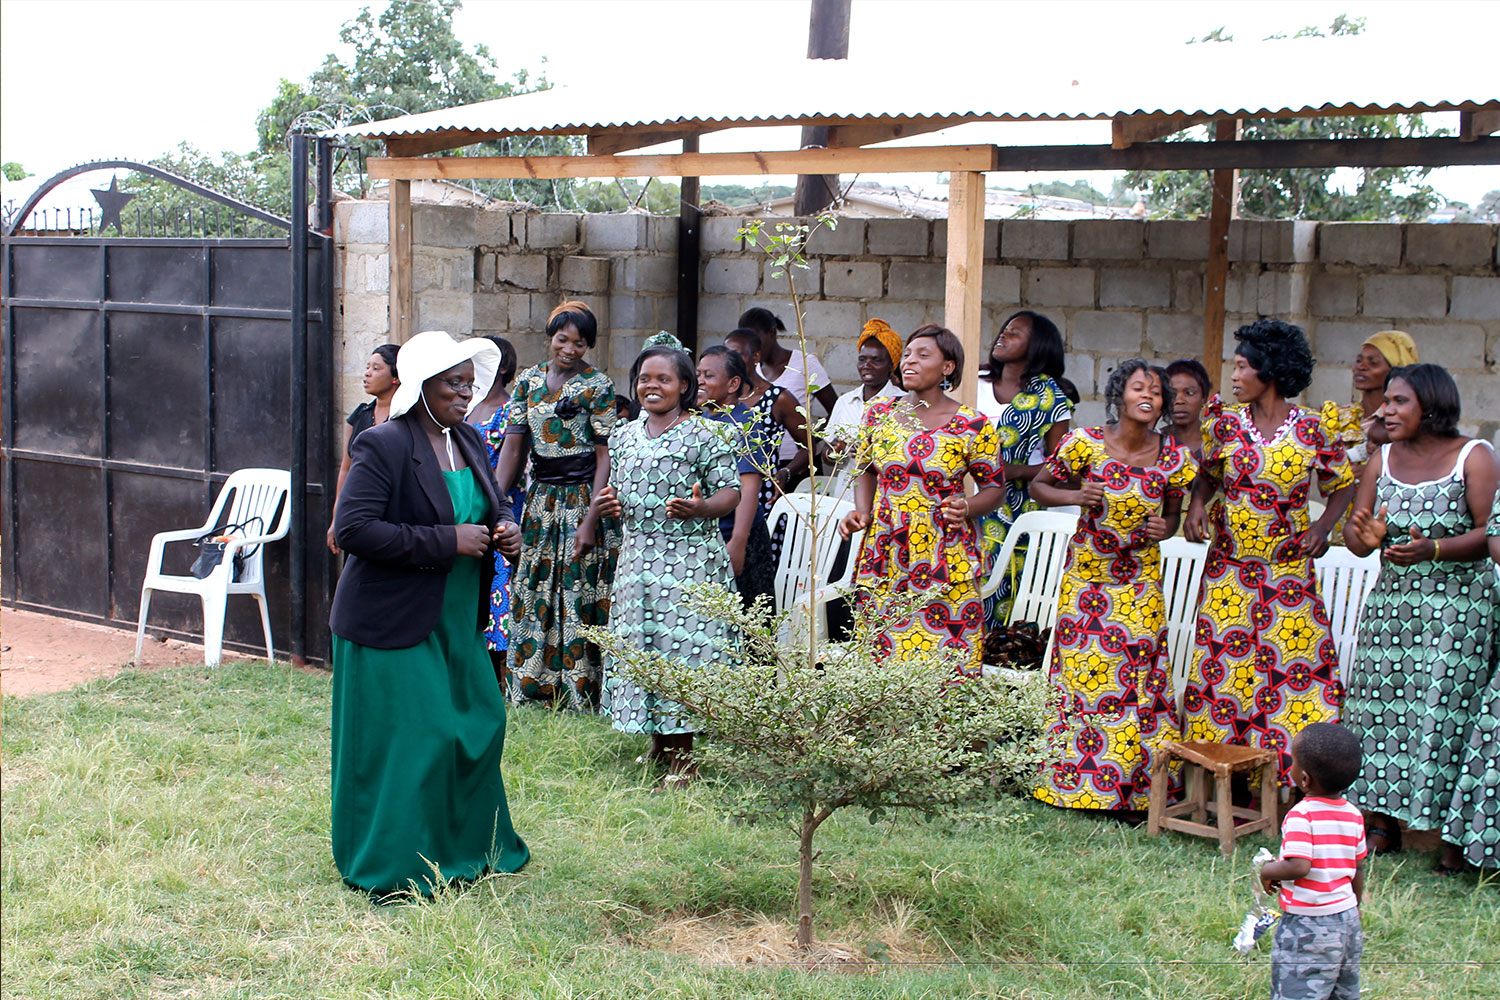 The CiH women nominate a Director of Ceremonies to lead the graduation day. Ireen (a current student, here in green), did a fabulous job leading us in singing, dancing, skits, and making sure all events of the day ran smoothly. You're the best, Ireen!